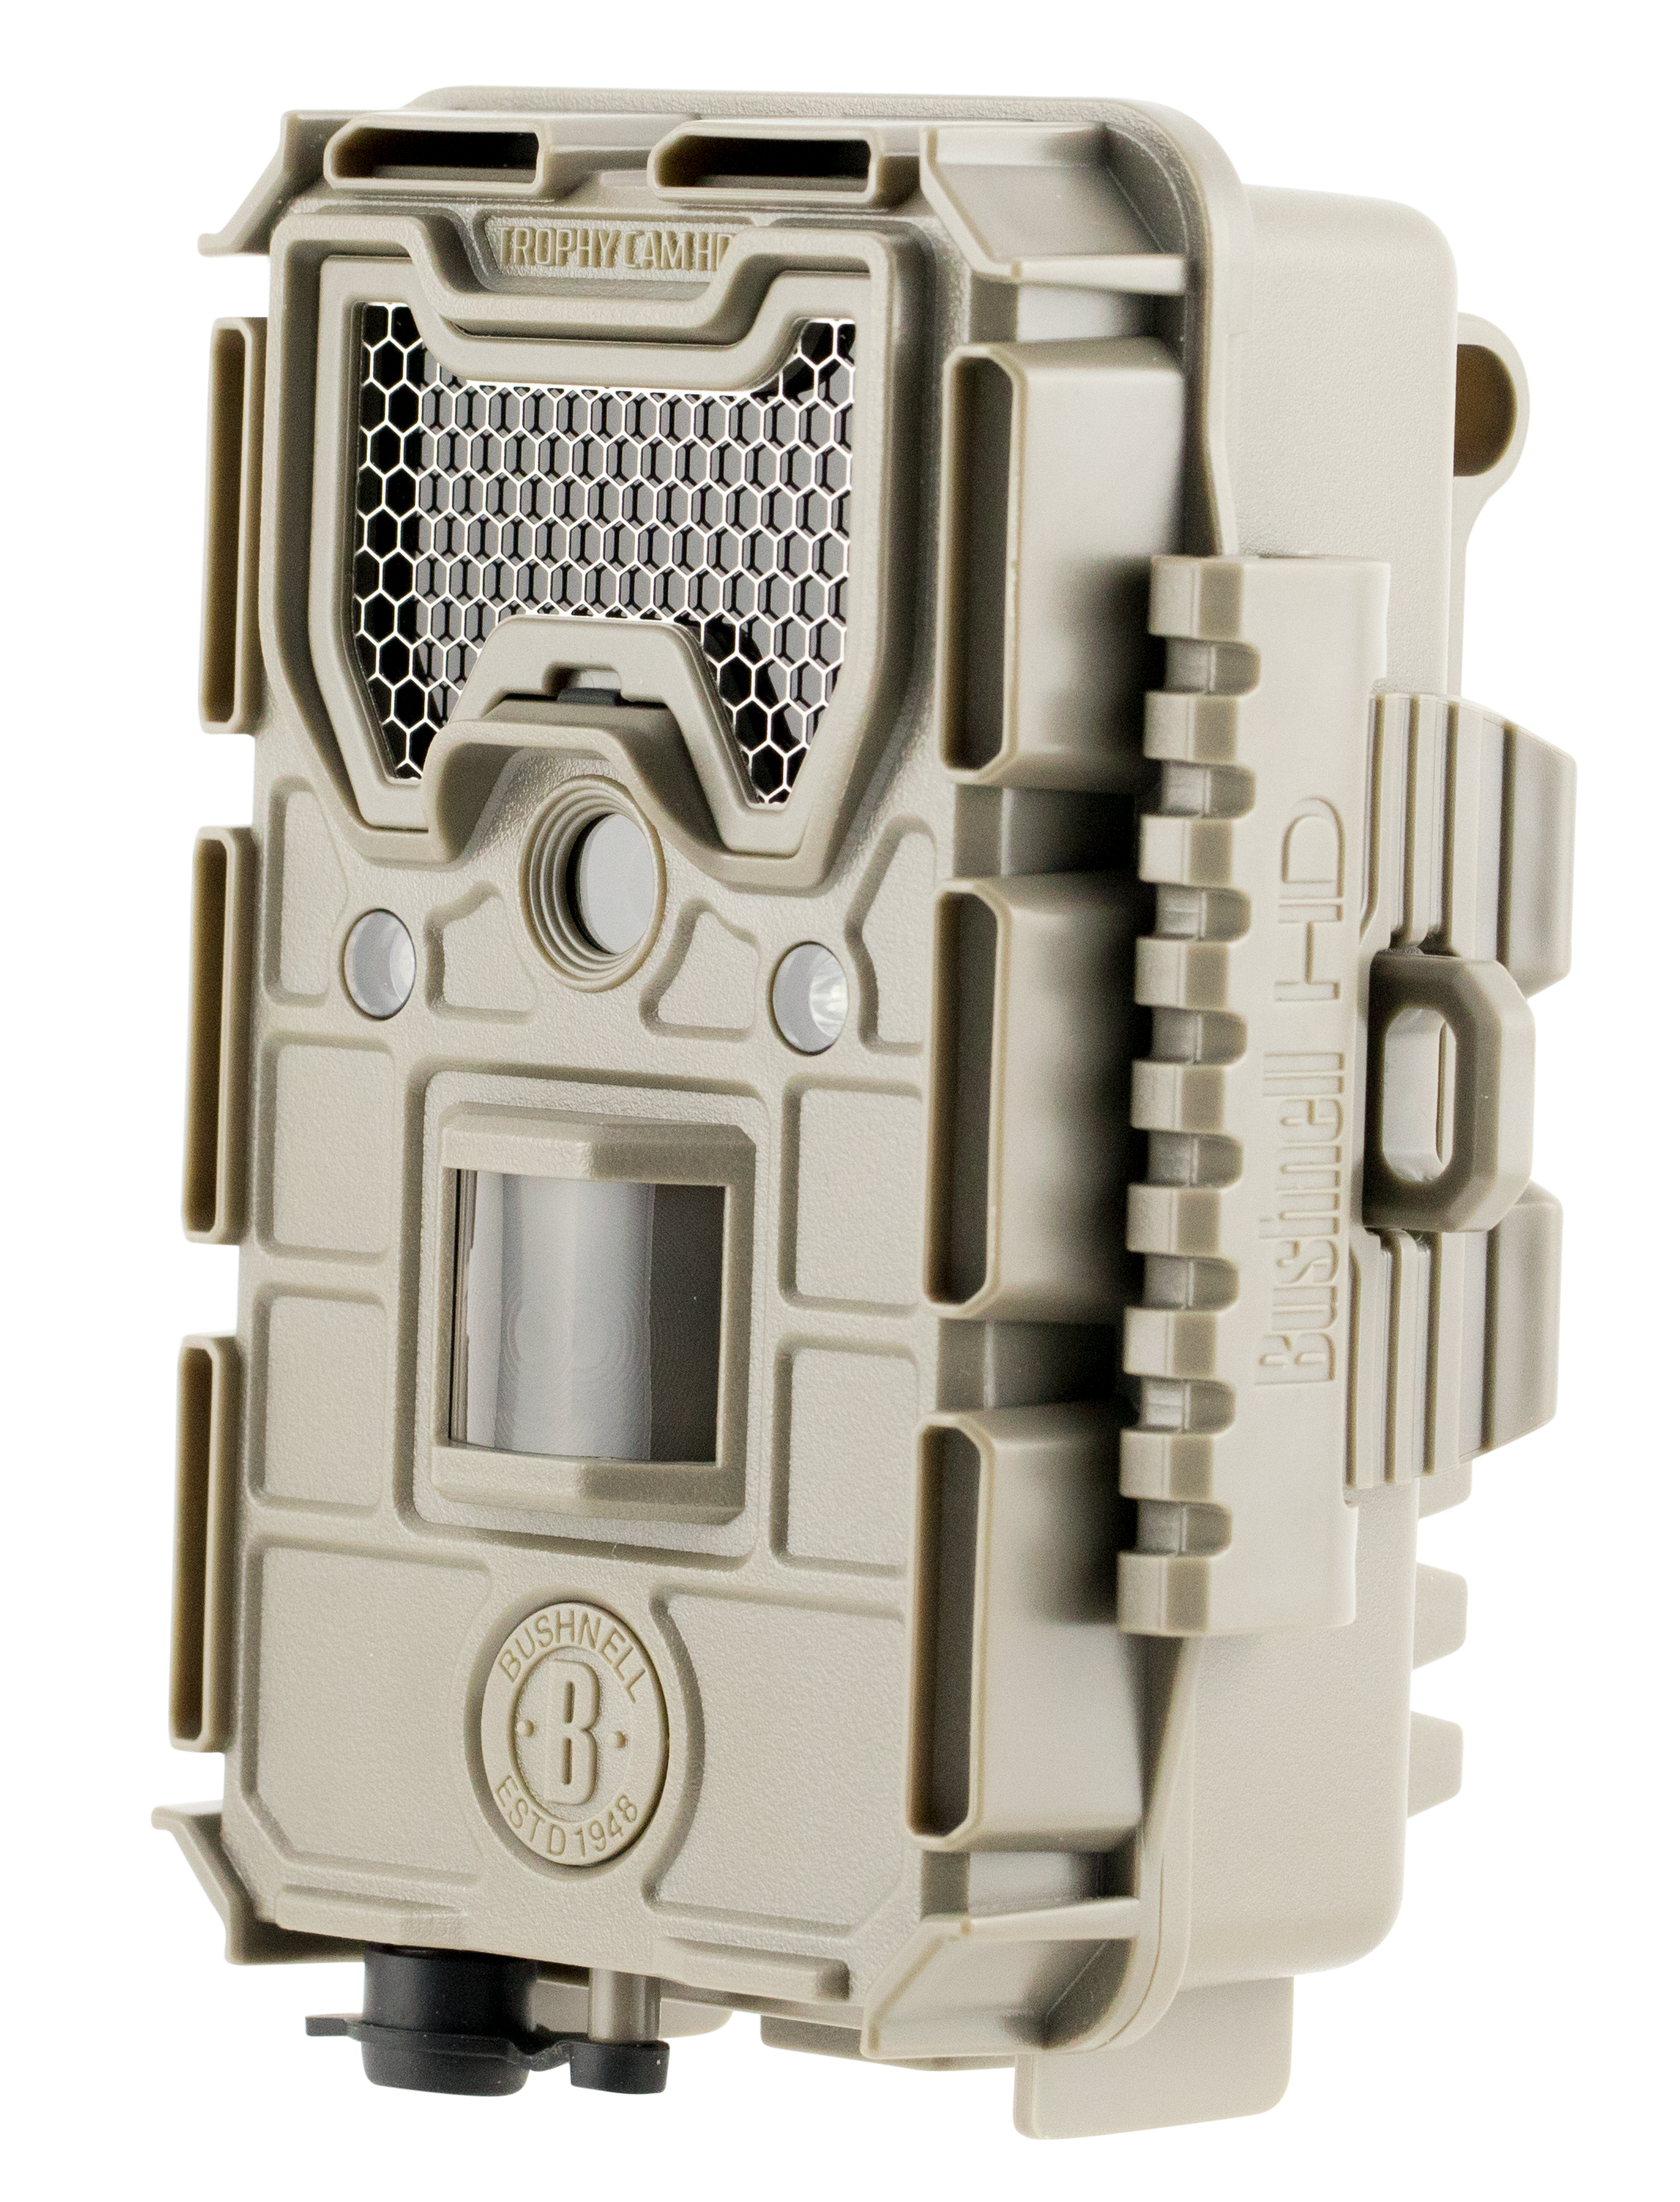 Bushnell 119874C Trophy Trail Camera 20 MP Gray